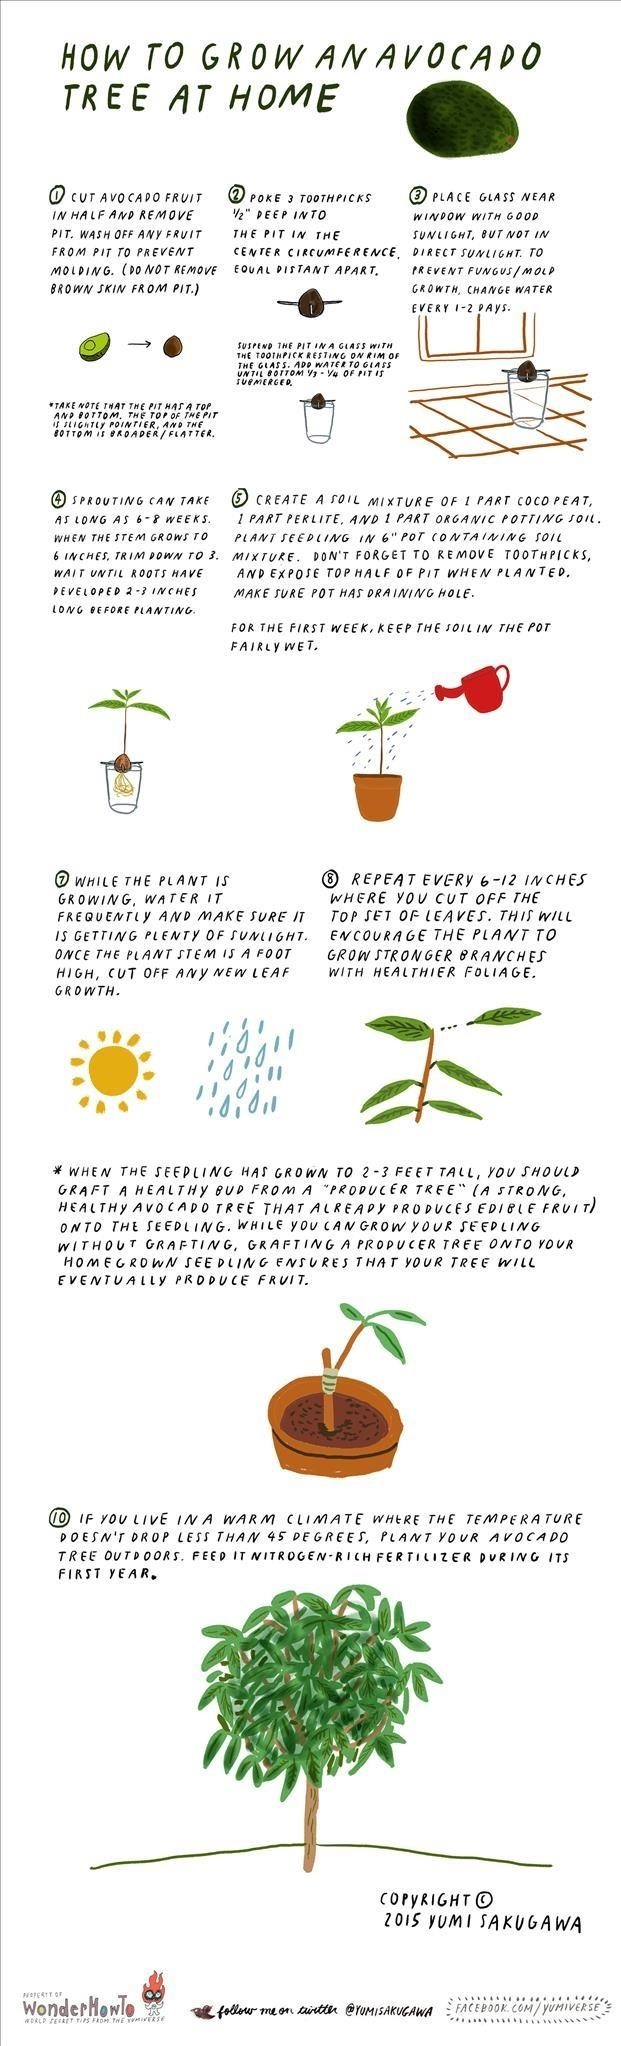 How to Grow an Avocado Tree at Home